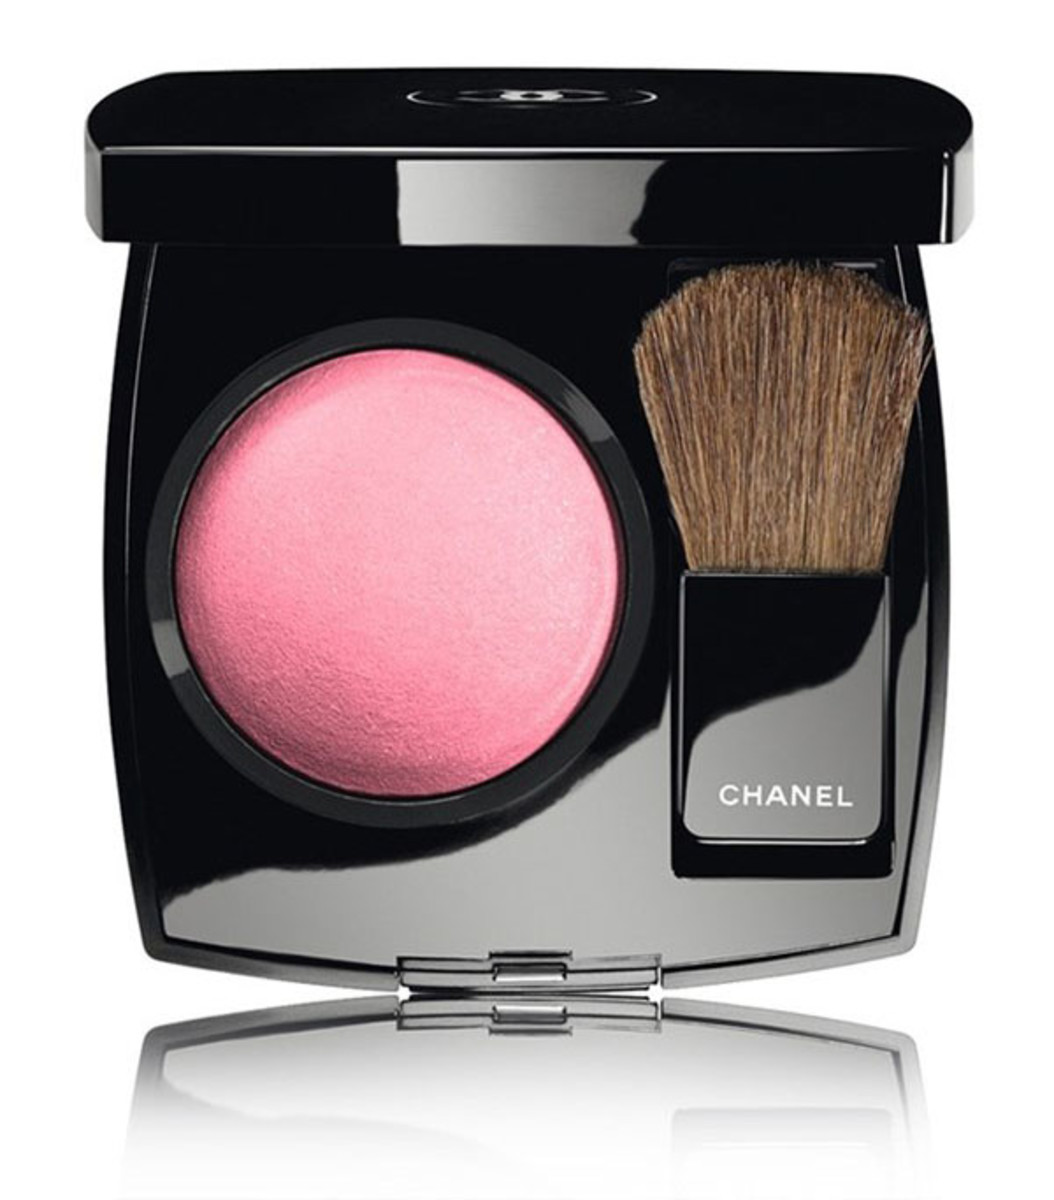 Chanel Joues Contraste Powder Blush in Pink Explosion